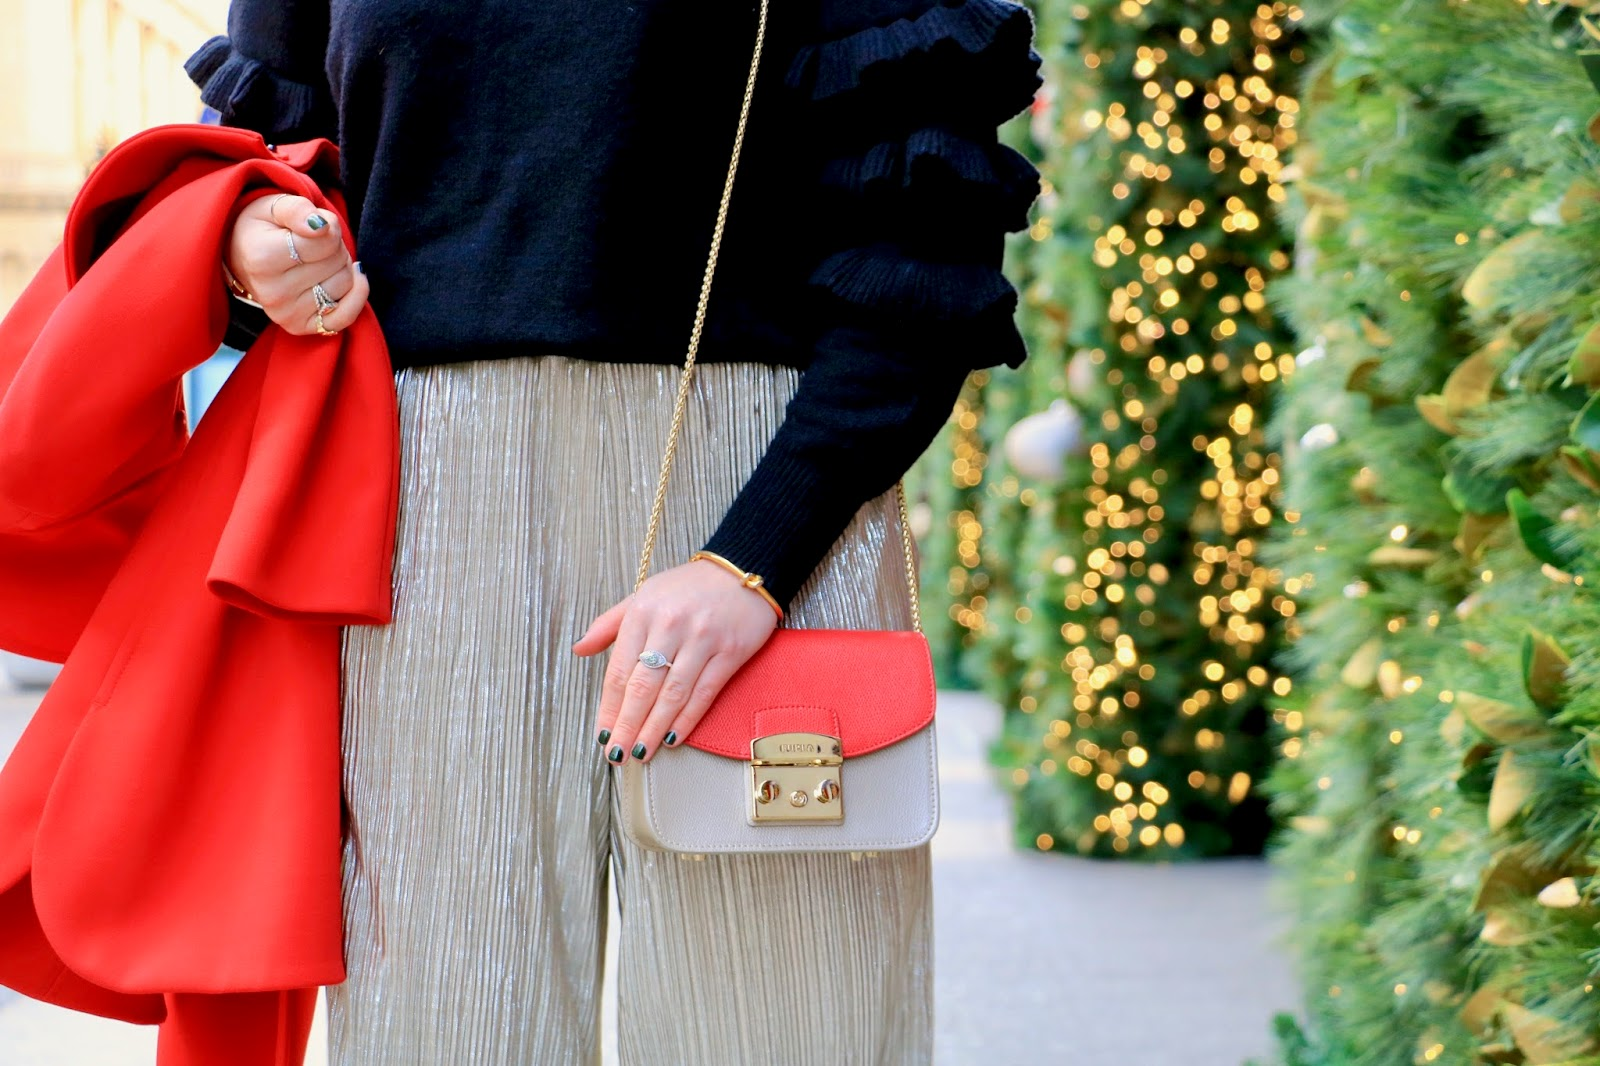 Nyc fashion blogger Kathleen Harper showing how to wear a ruffle sweater